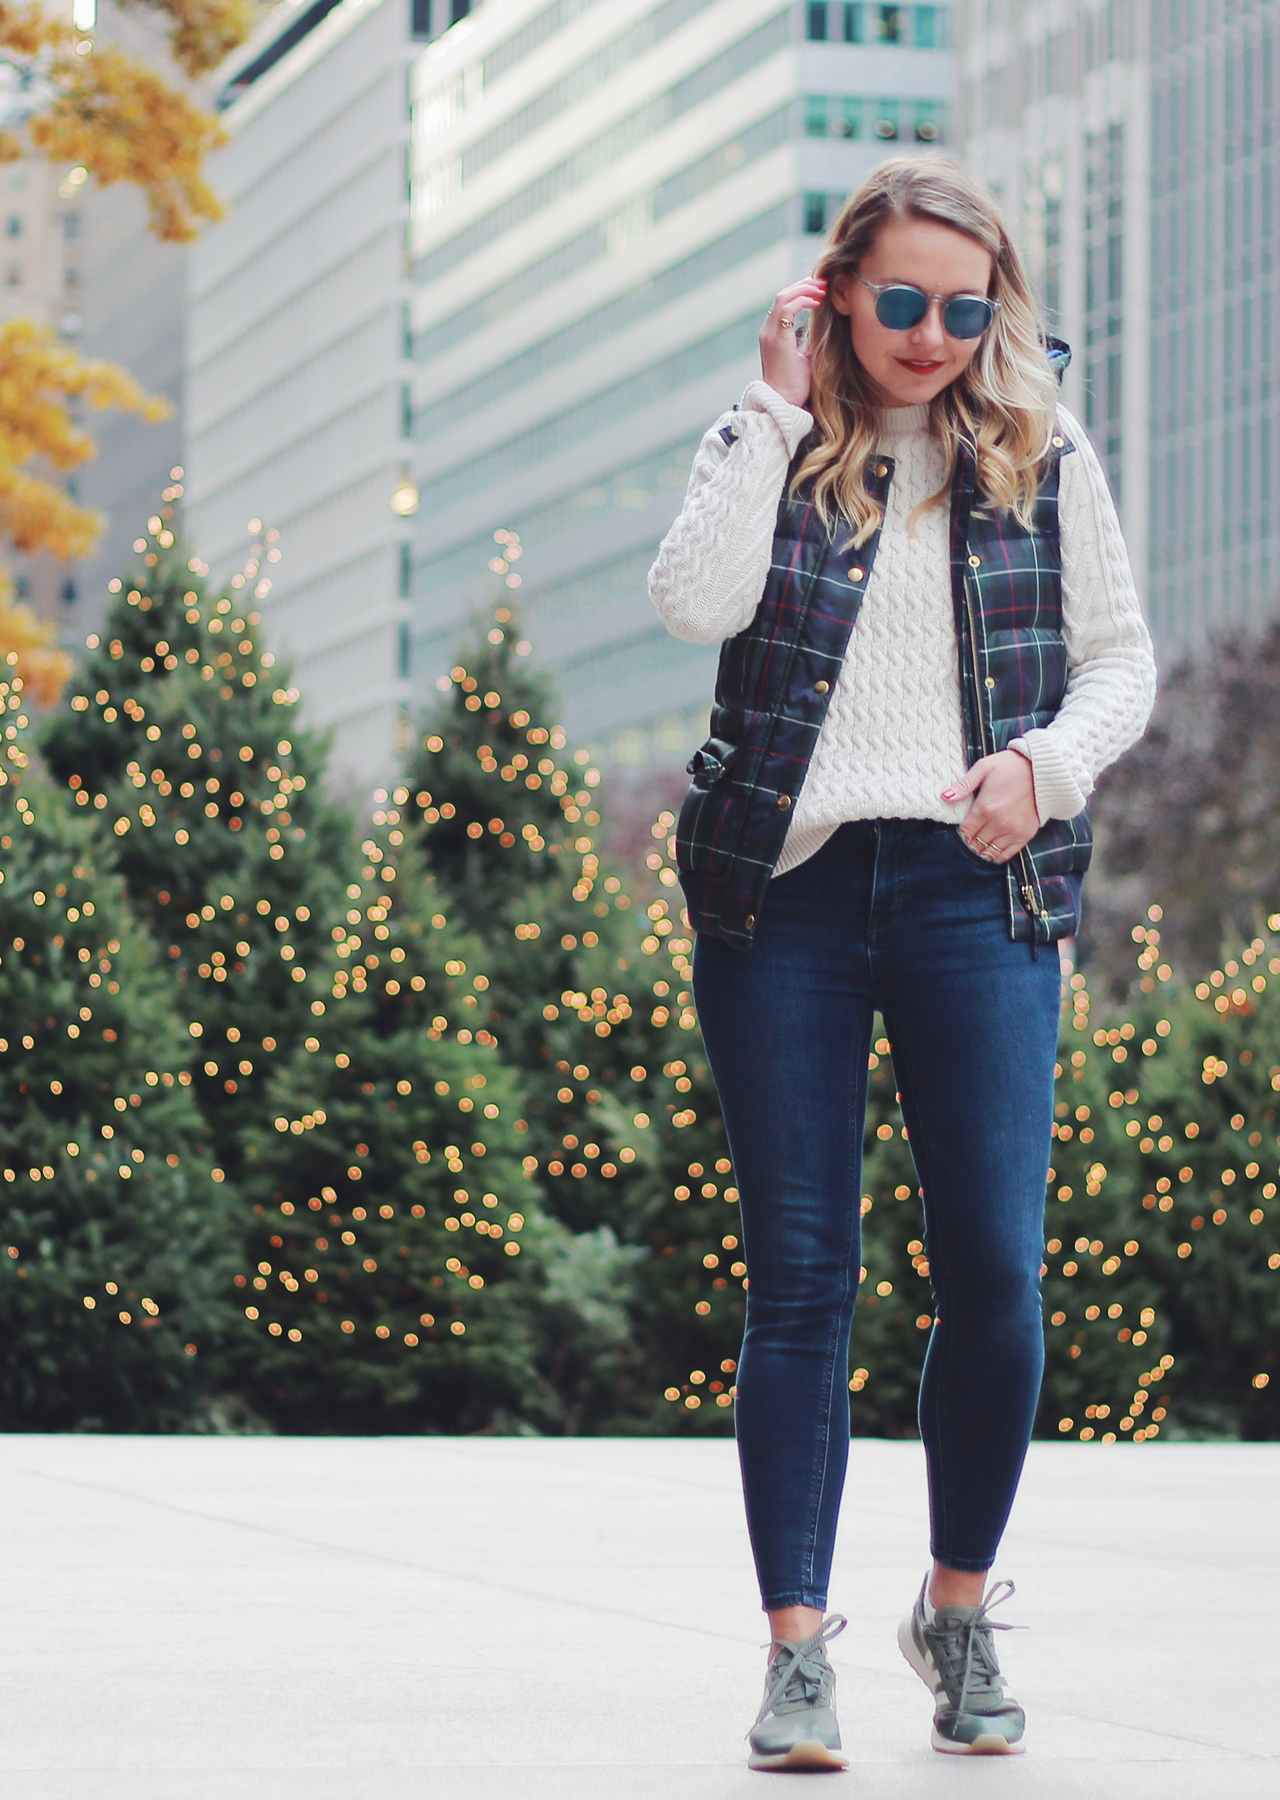 The Steele Maiden: Casual Holiday Outfit Ideas - plaid puffer vest and sneakers